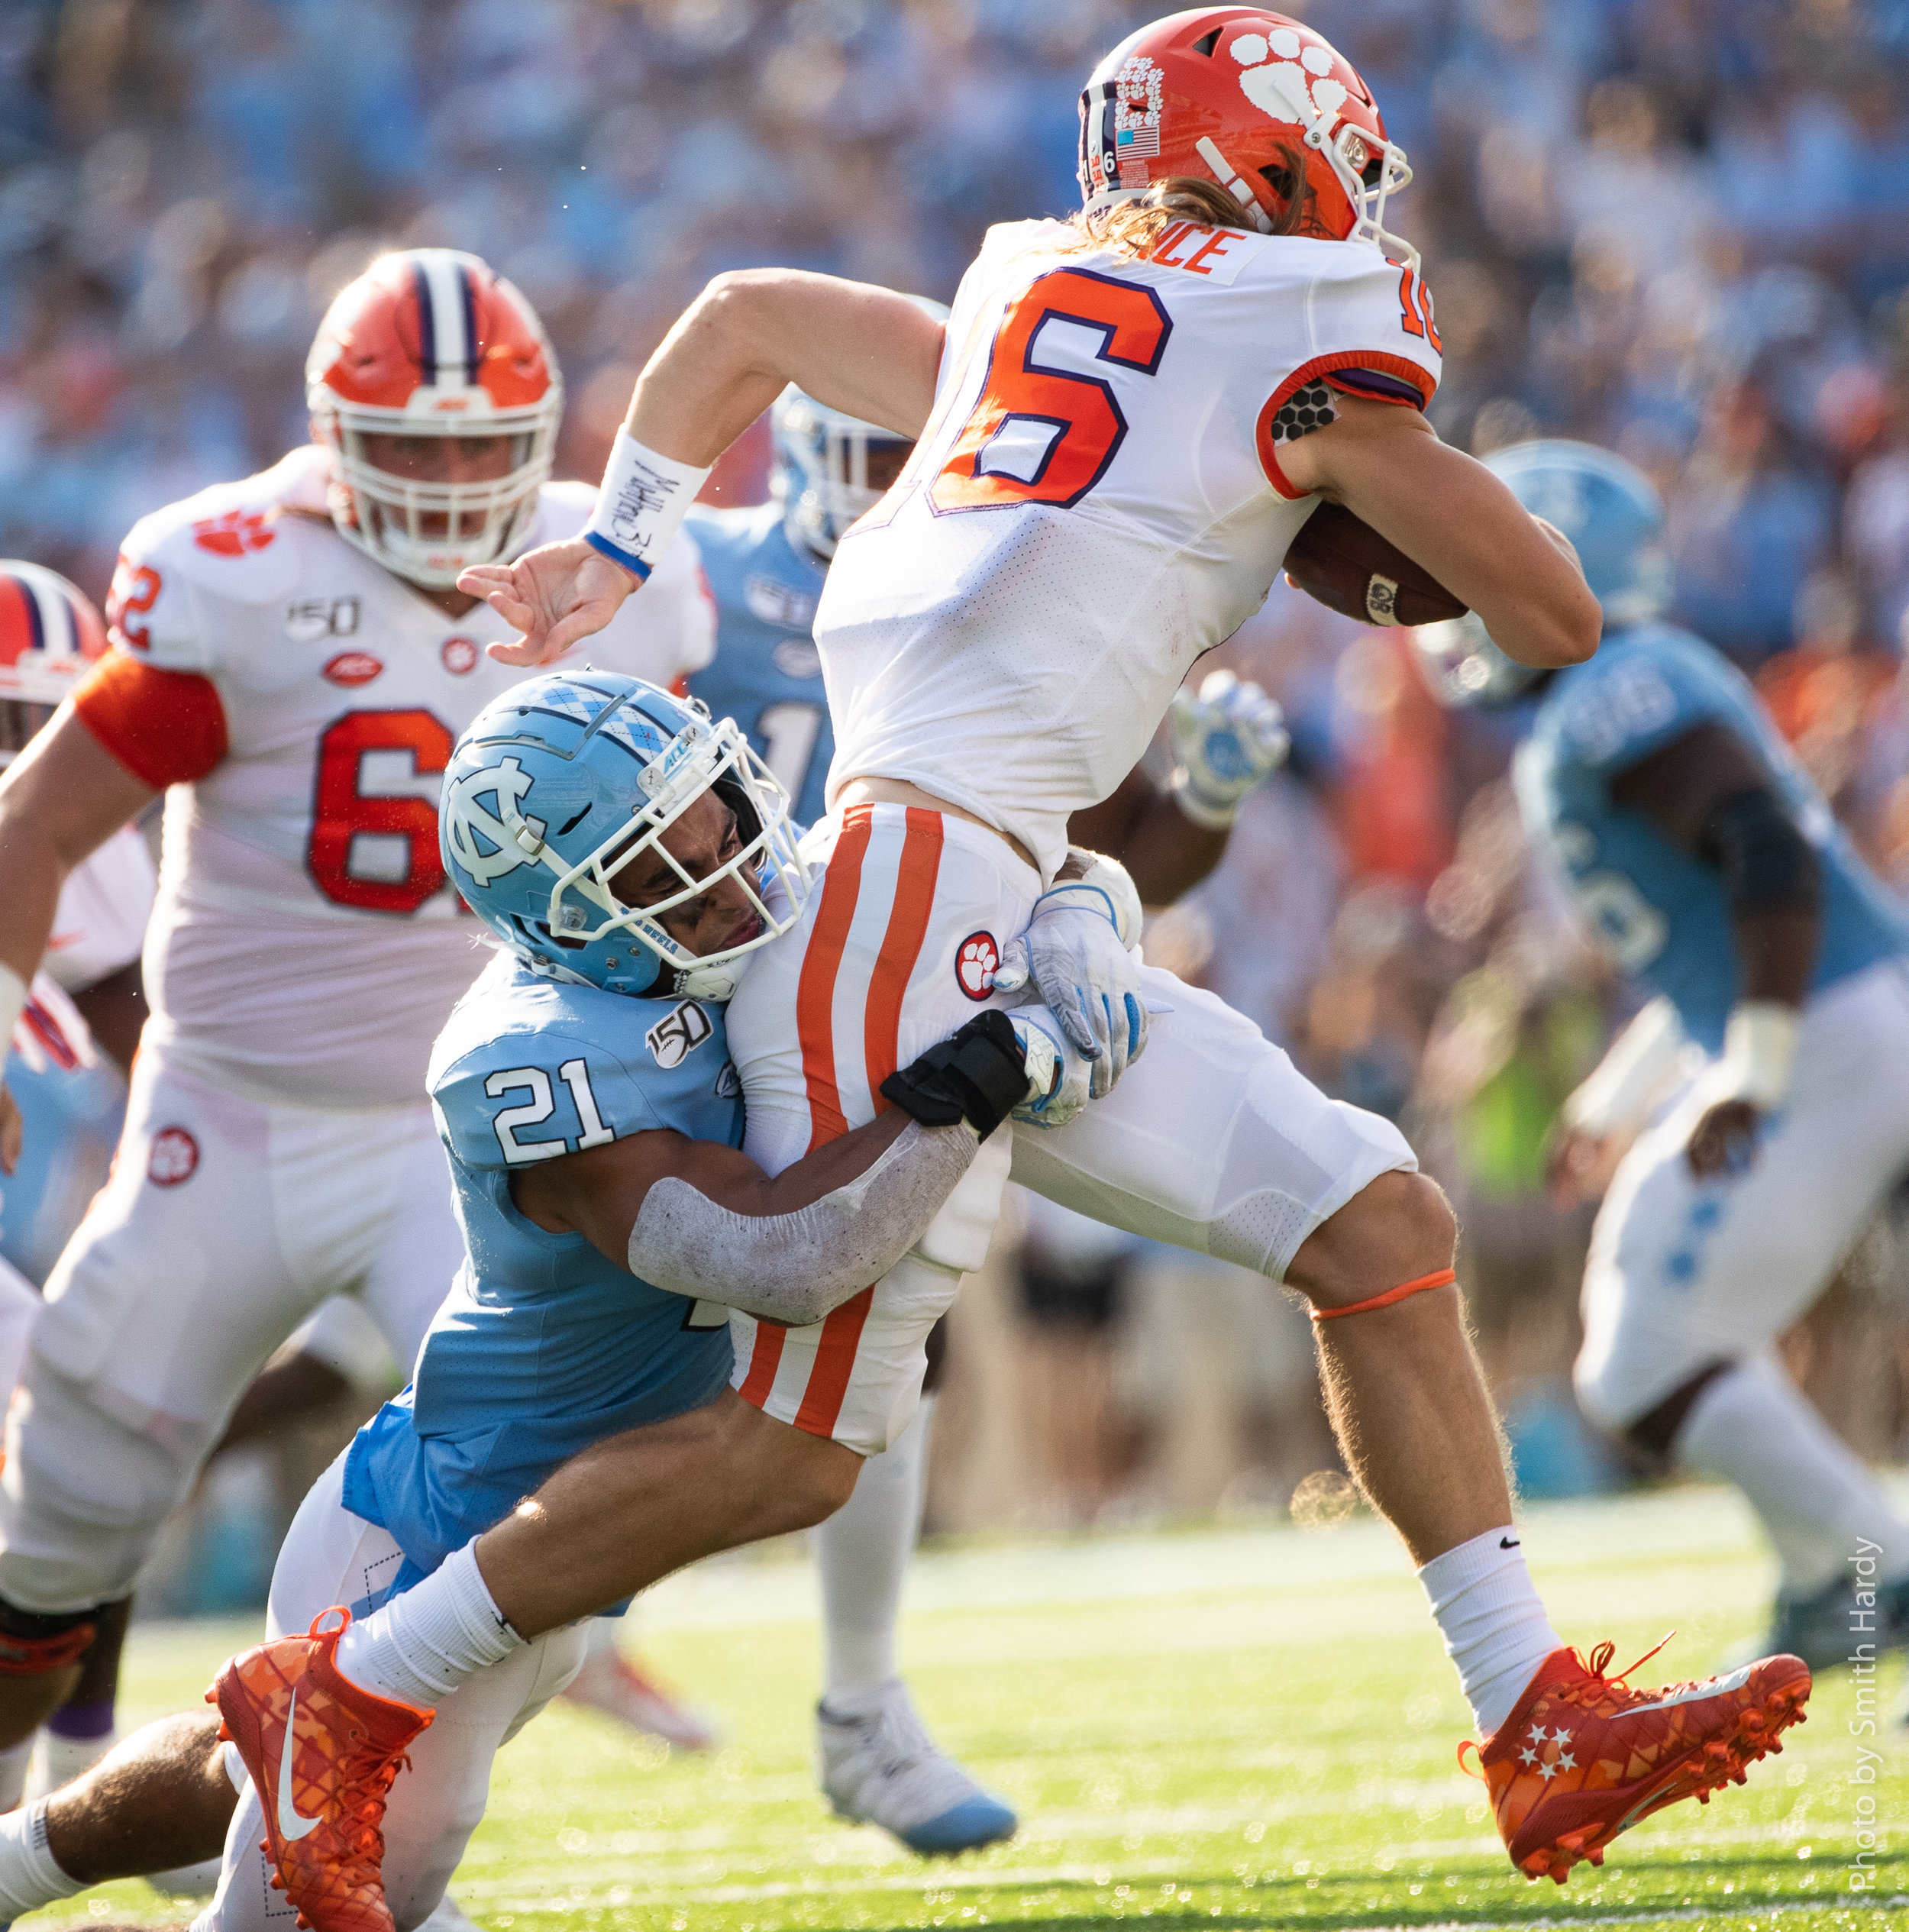 Chazz Surratt had UNC's only sack of Trevor Lawrence.